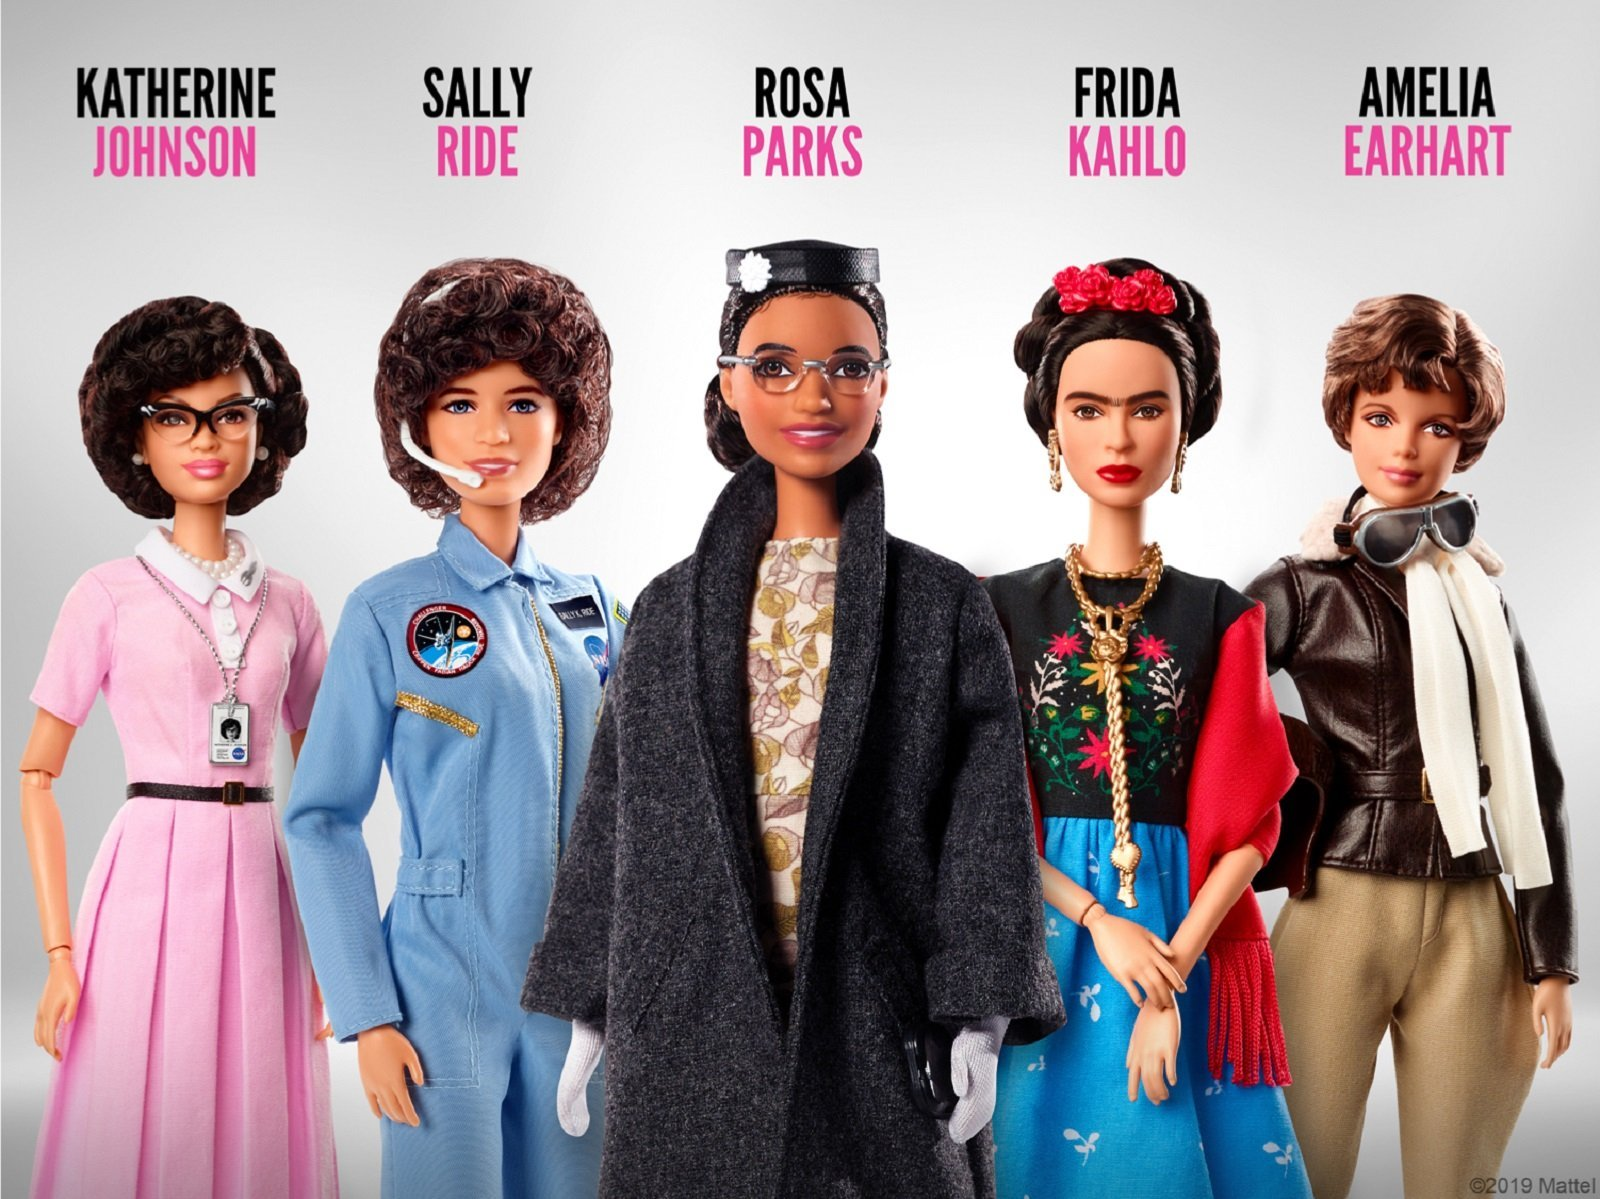 """""""Women's Equality Day celebrates the hard-won achievement of women's suffrage and pays tribute to the trailblazers who paved the way for future generations,"""" the Mattel spokesperson said."""